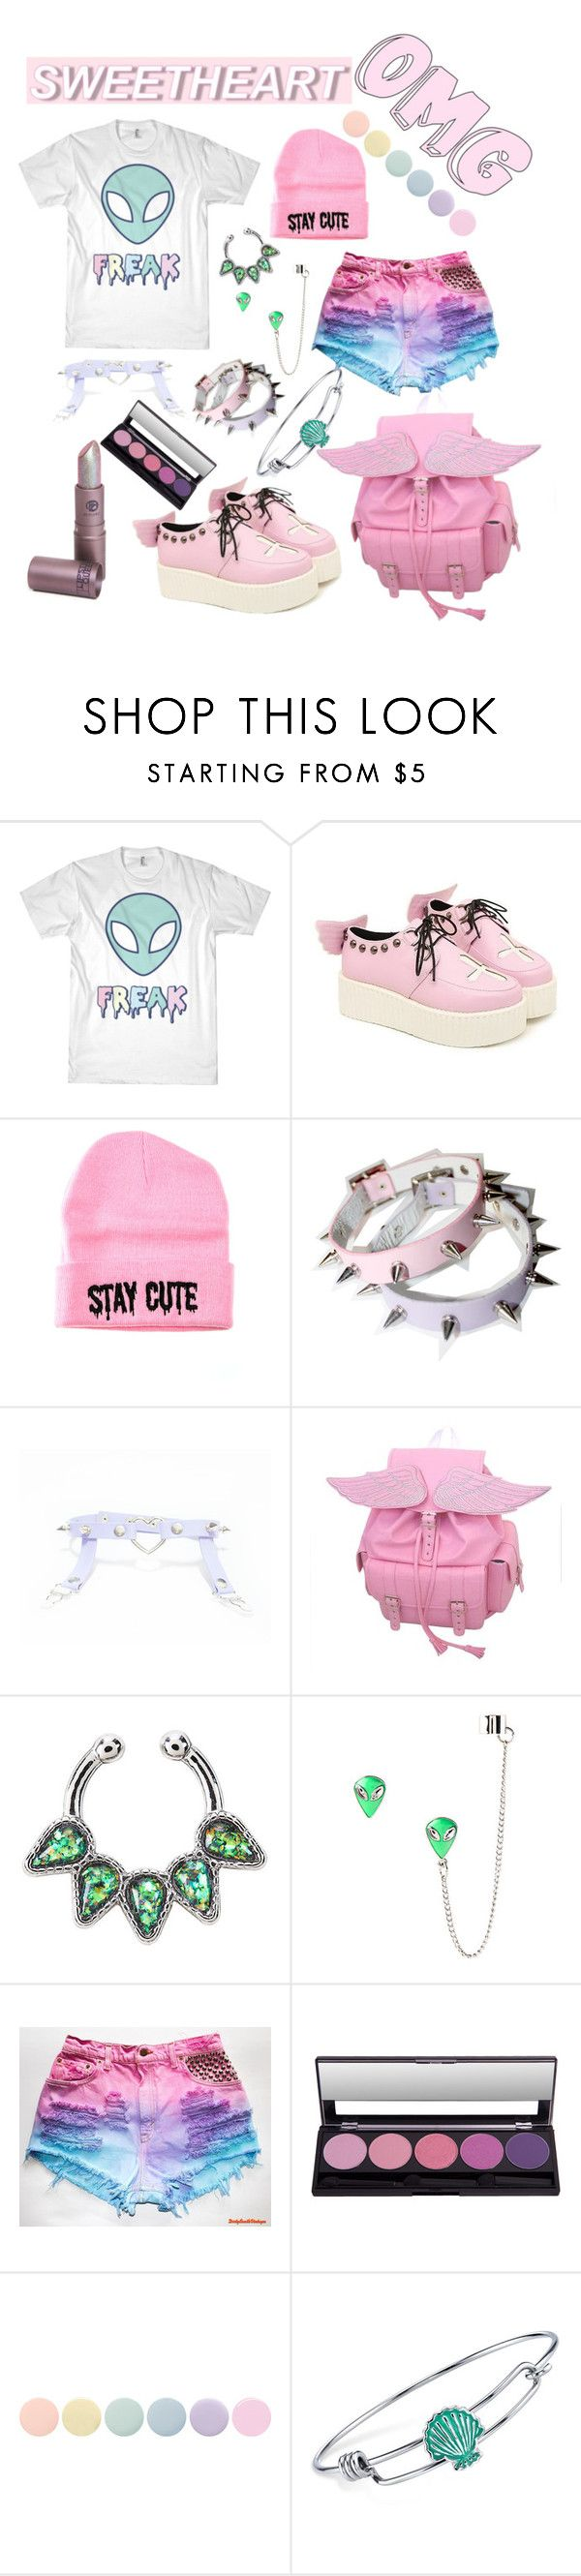 """""""pastel goth"""" by chickadeeanya ❤ liked on Polyvore featuring Stay Cute, Deborah Lippmann and Disney"""